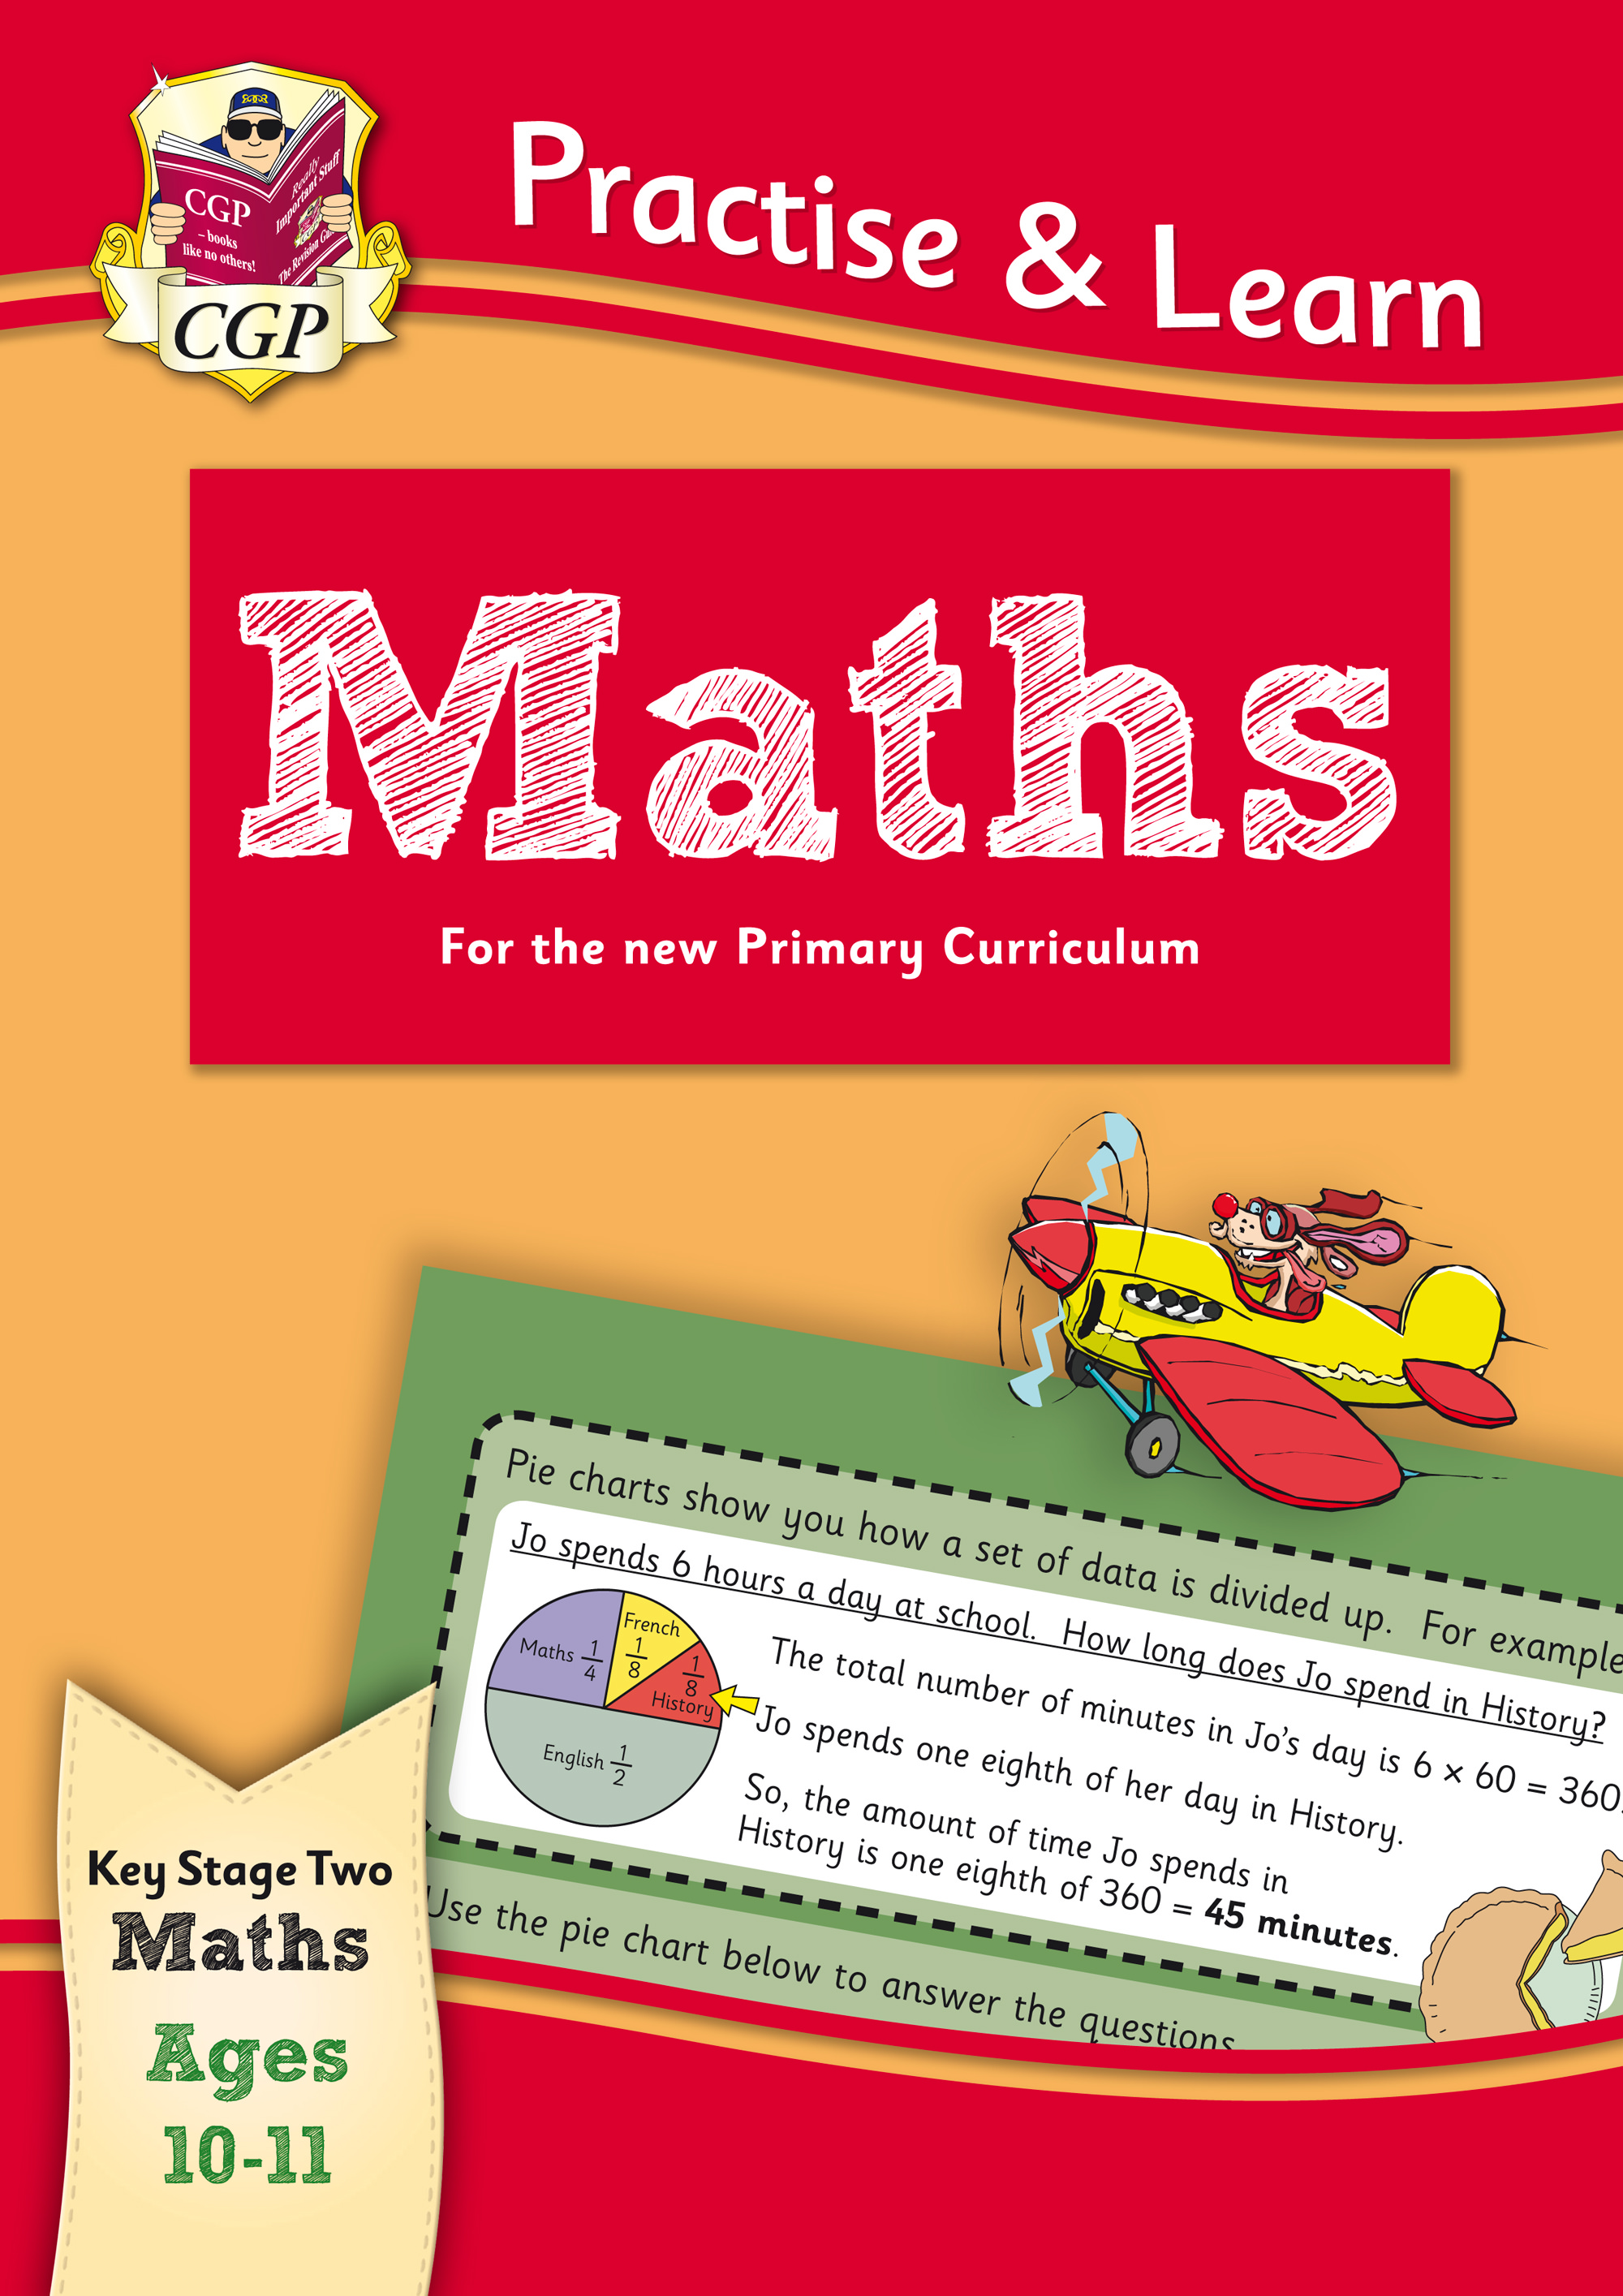 MP6Q22 - New Practise & Learn: Maths for Ages 10-11